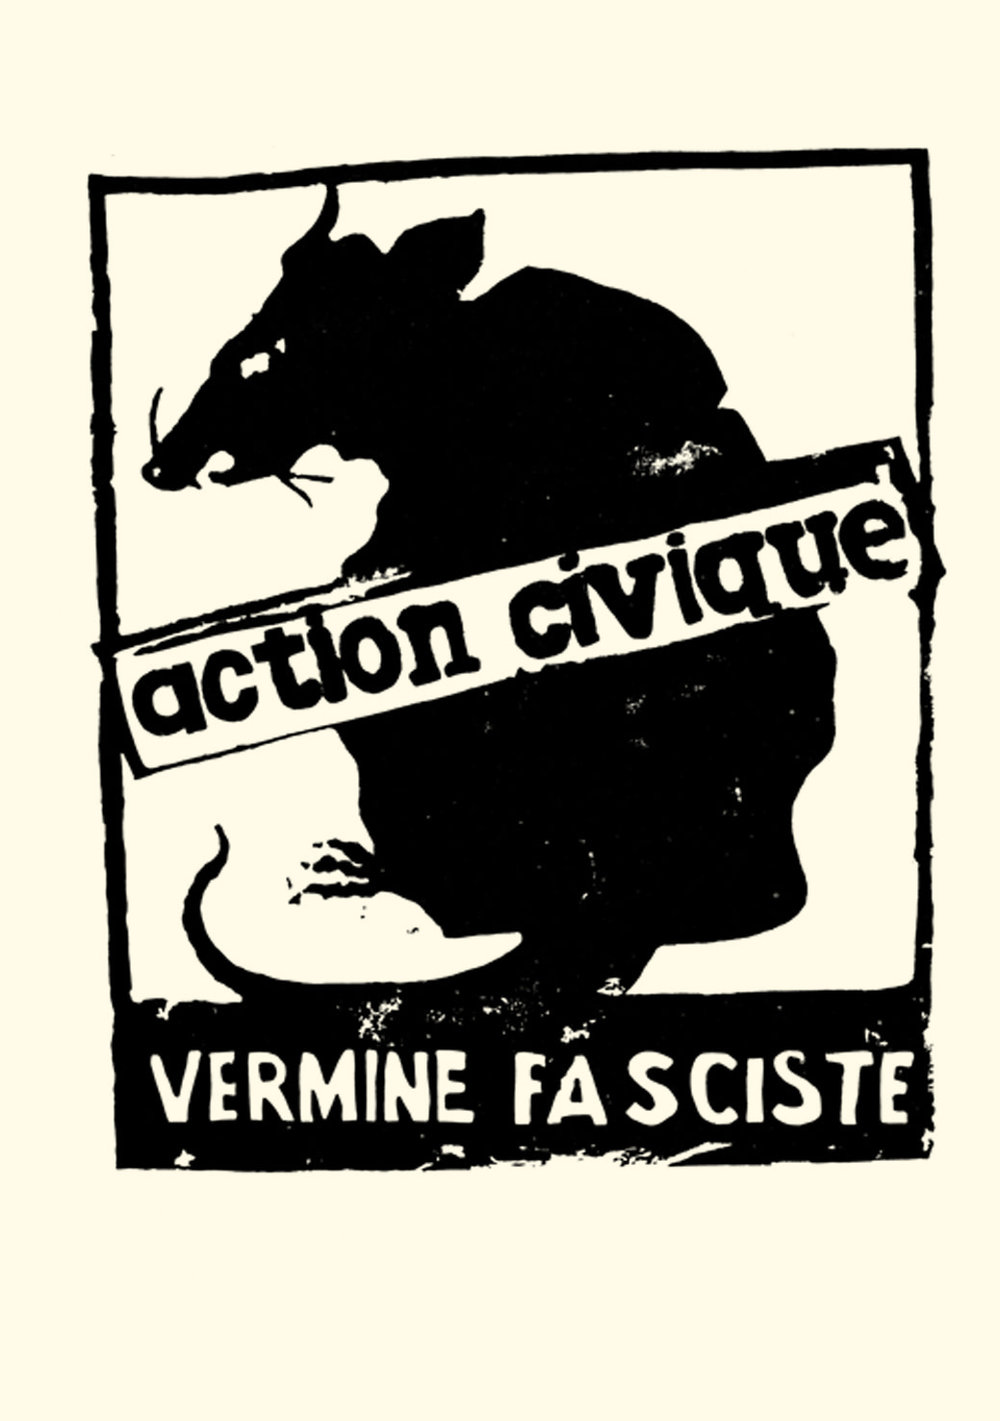 71-Civic-Action---Fascist-V copy.jpg